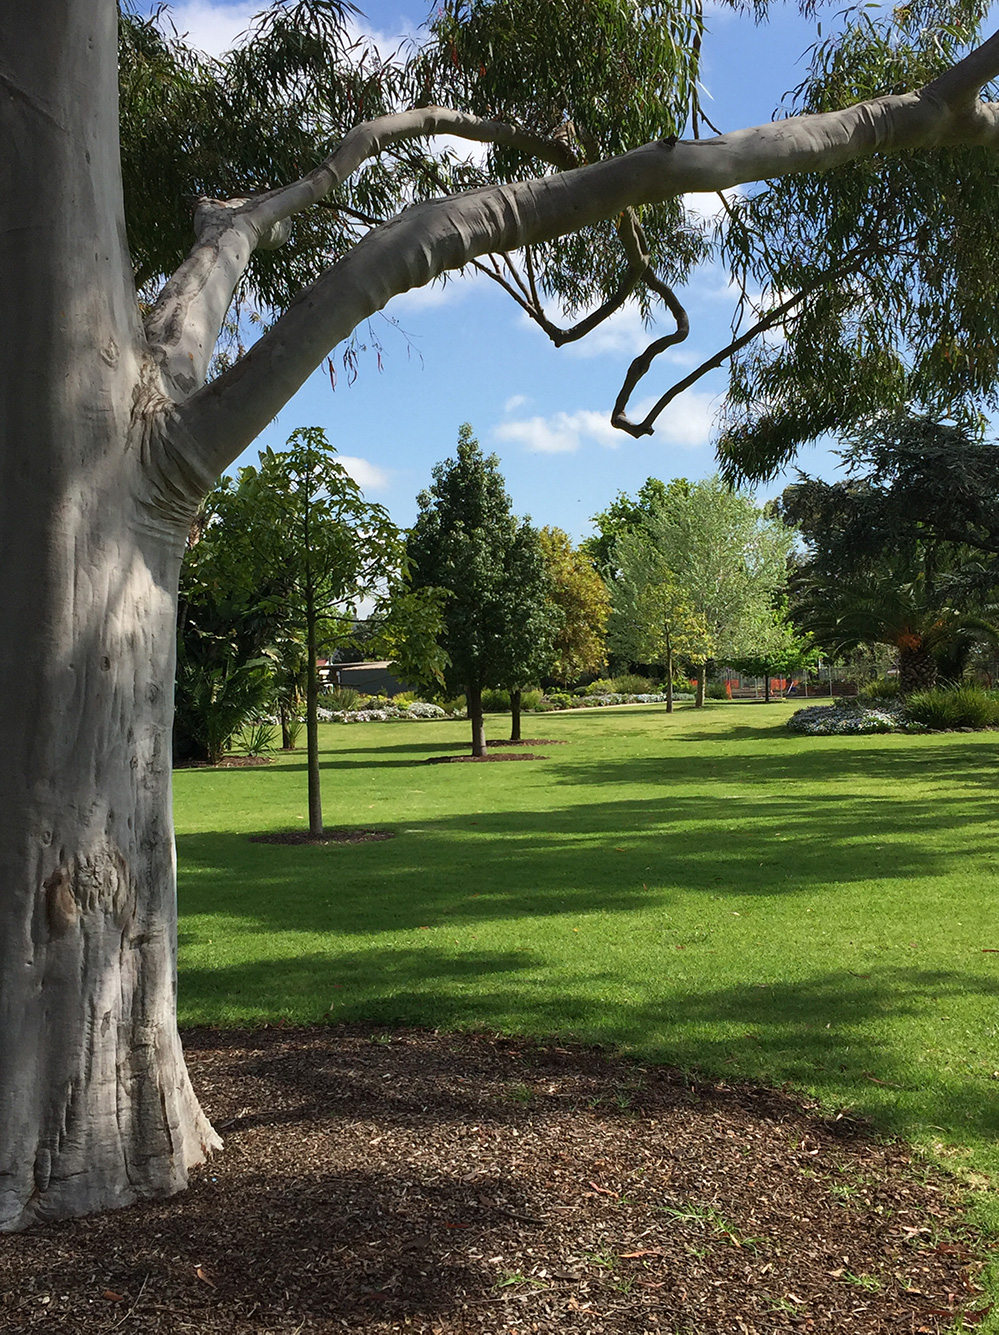 Grassed area and mature trees